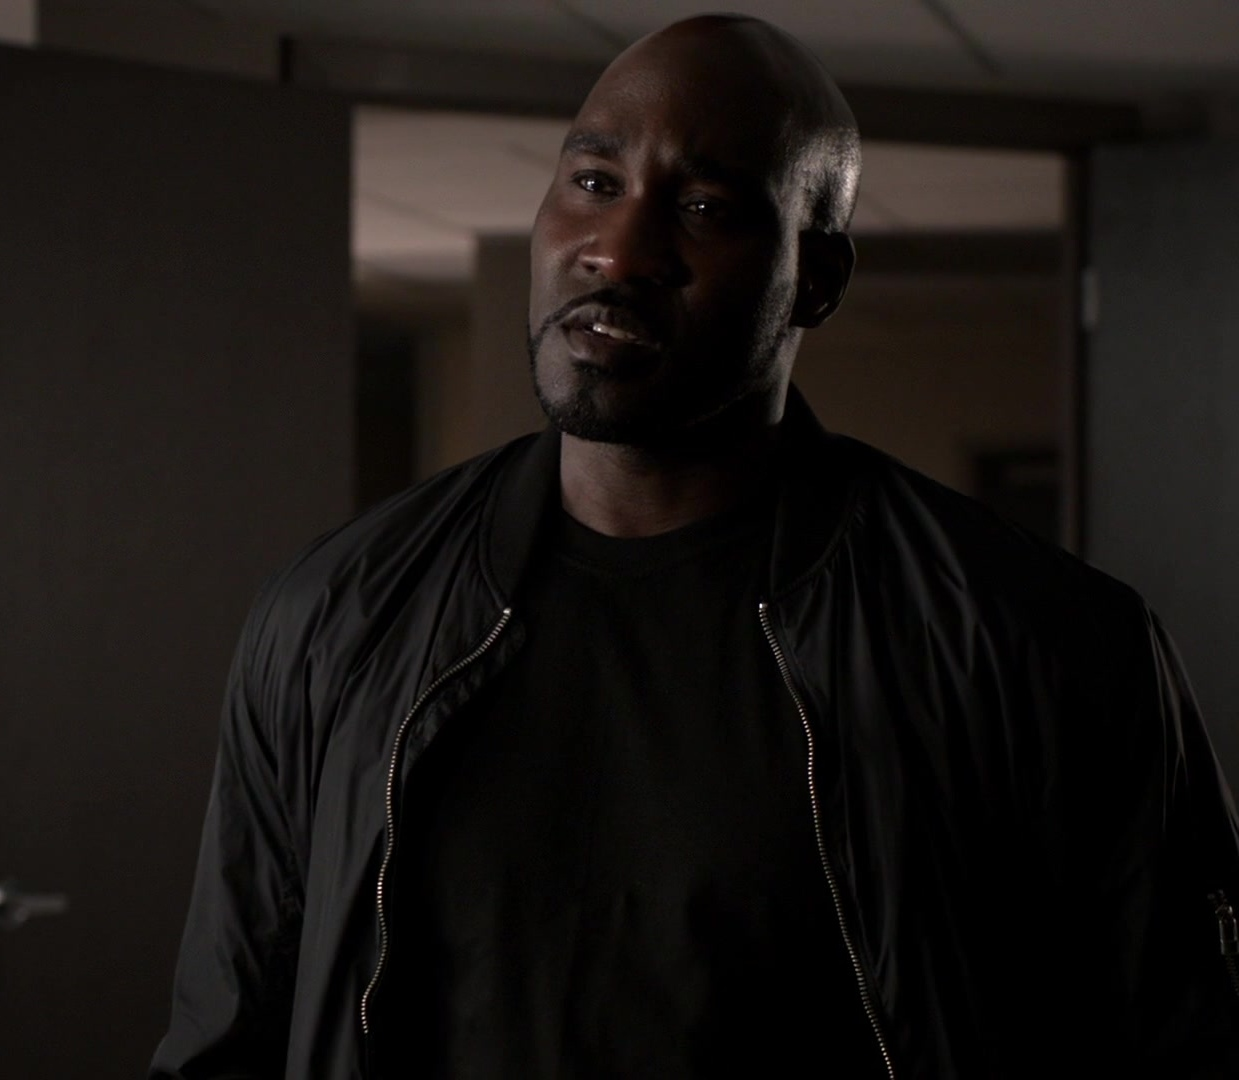 Robert DuBois (Arrowverse: Earth-38)